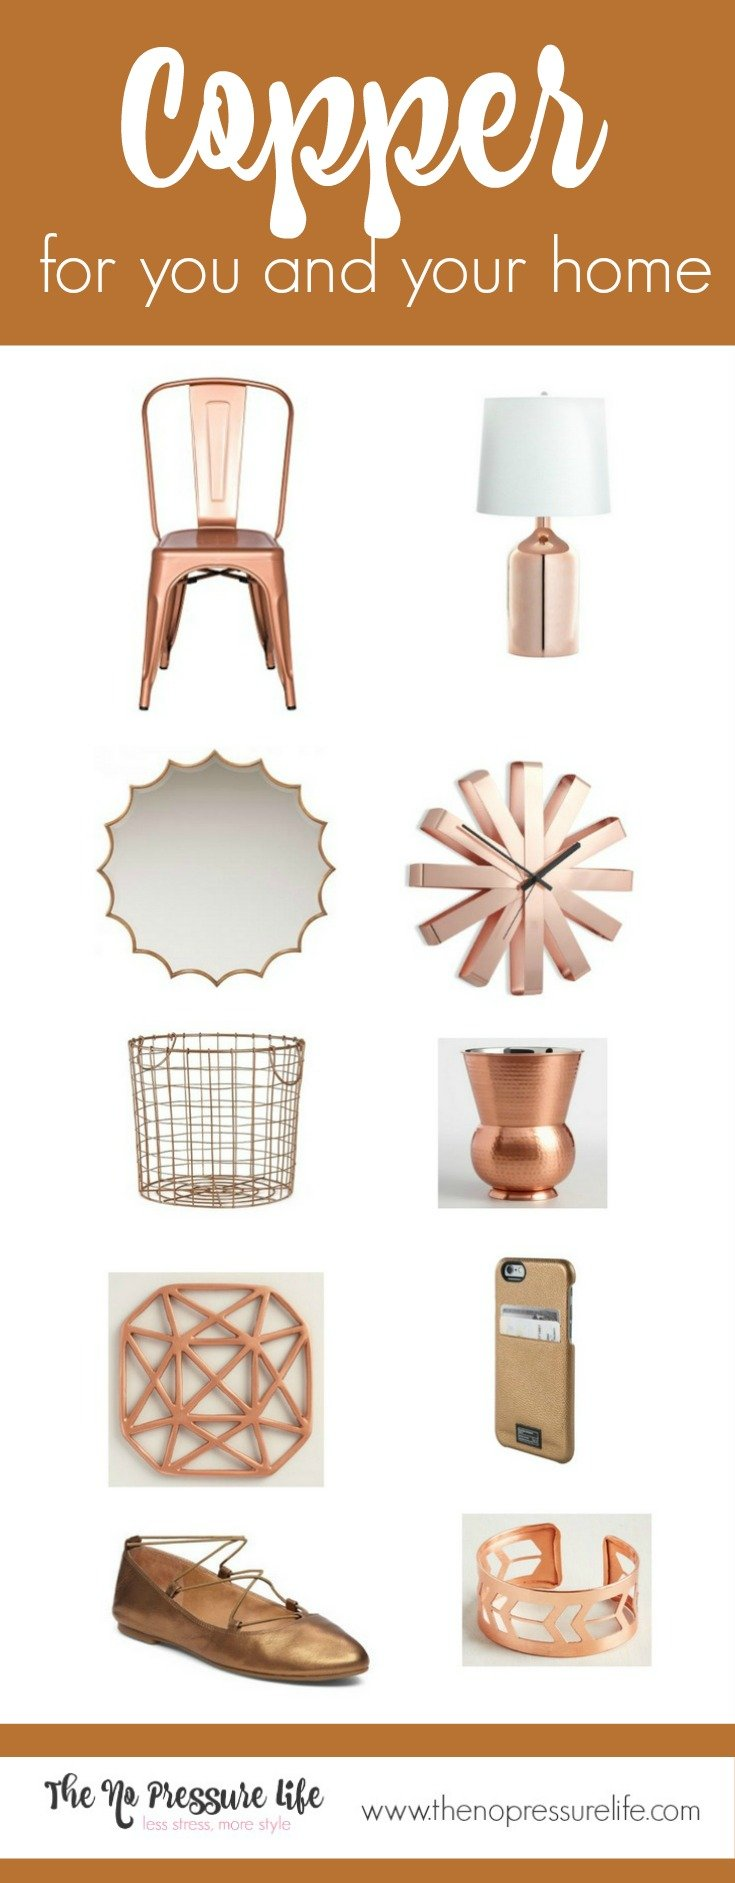 Warm up your home and wardrobe with copper accessories! Here's a list of 10 gorgeous copper home accessories - plus a little copper for your closet, too! Get the sources at The No Pressure Life.